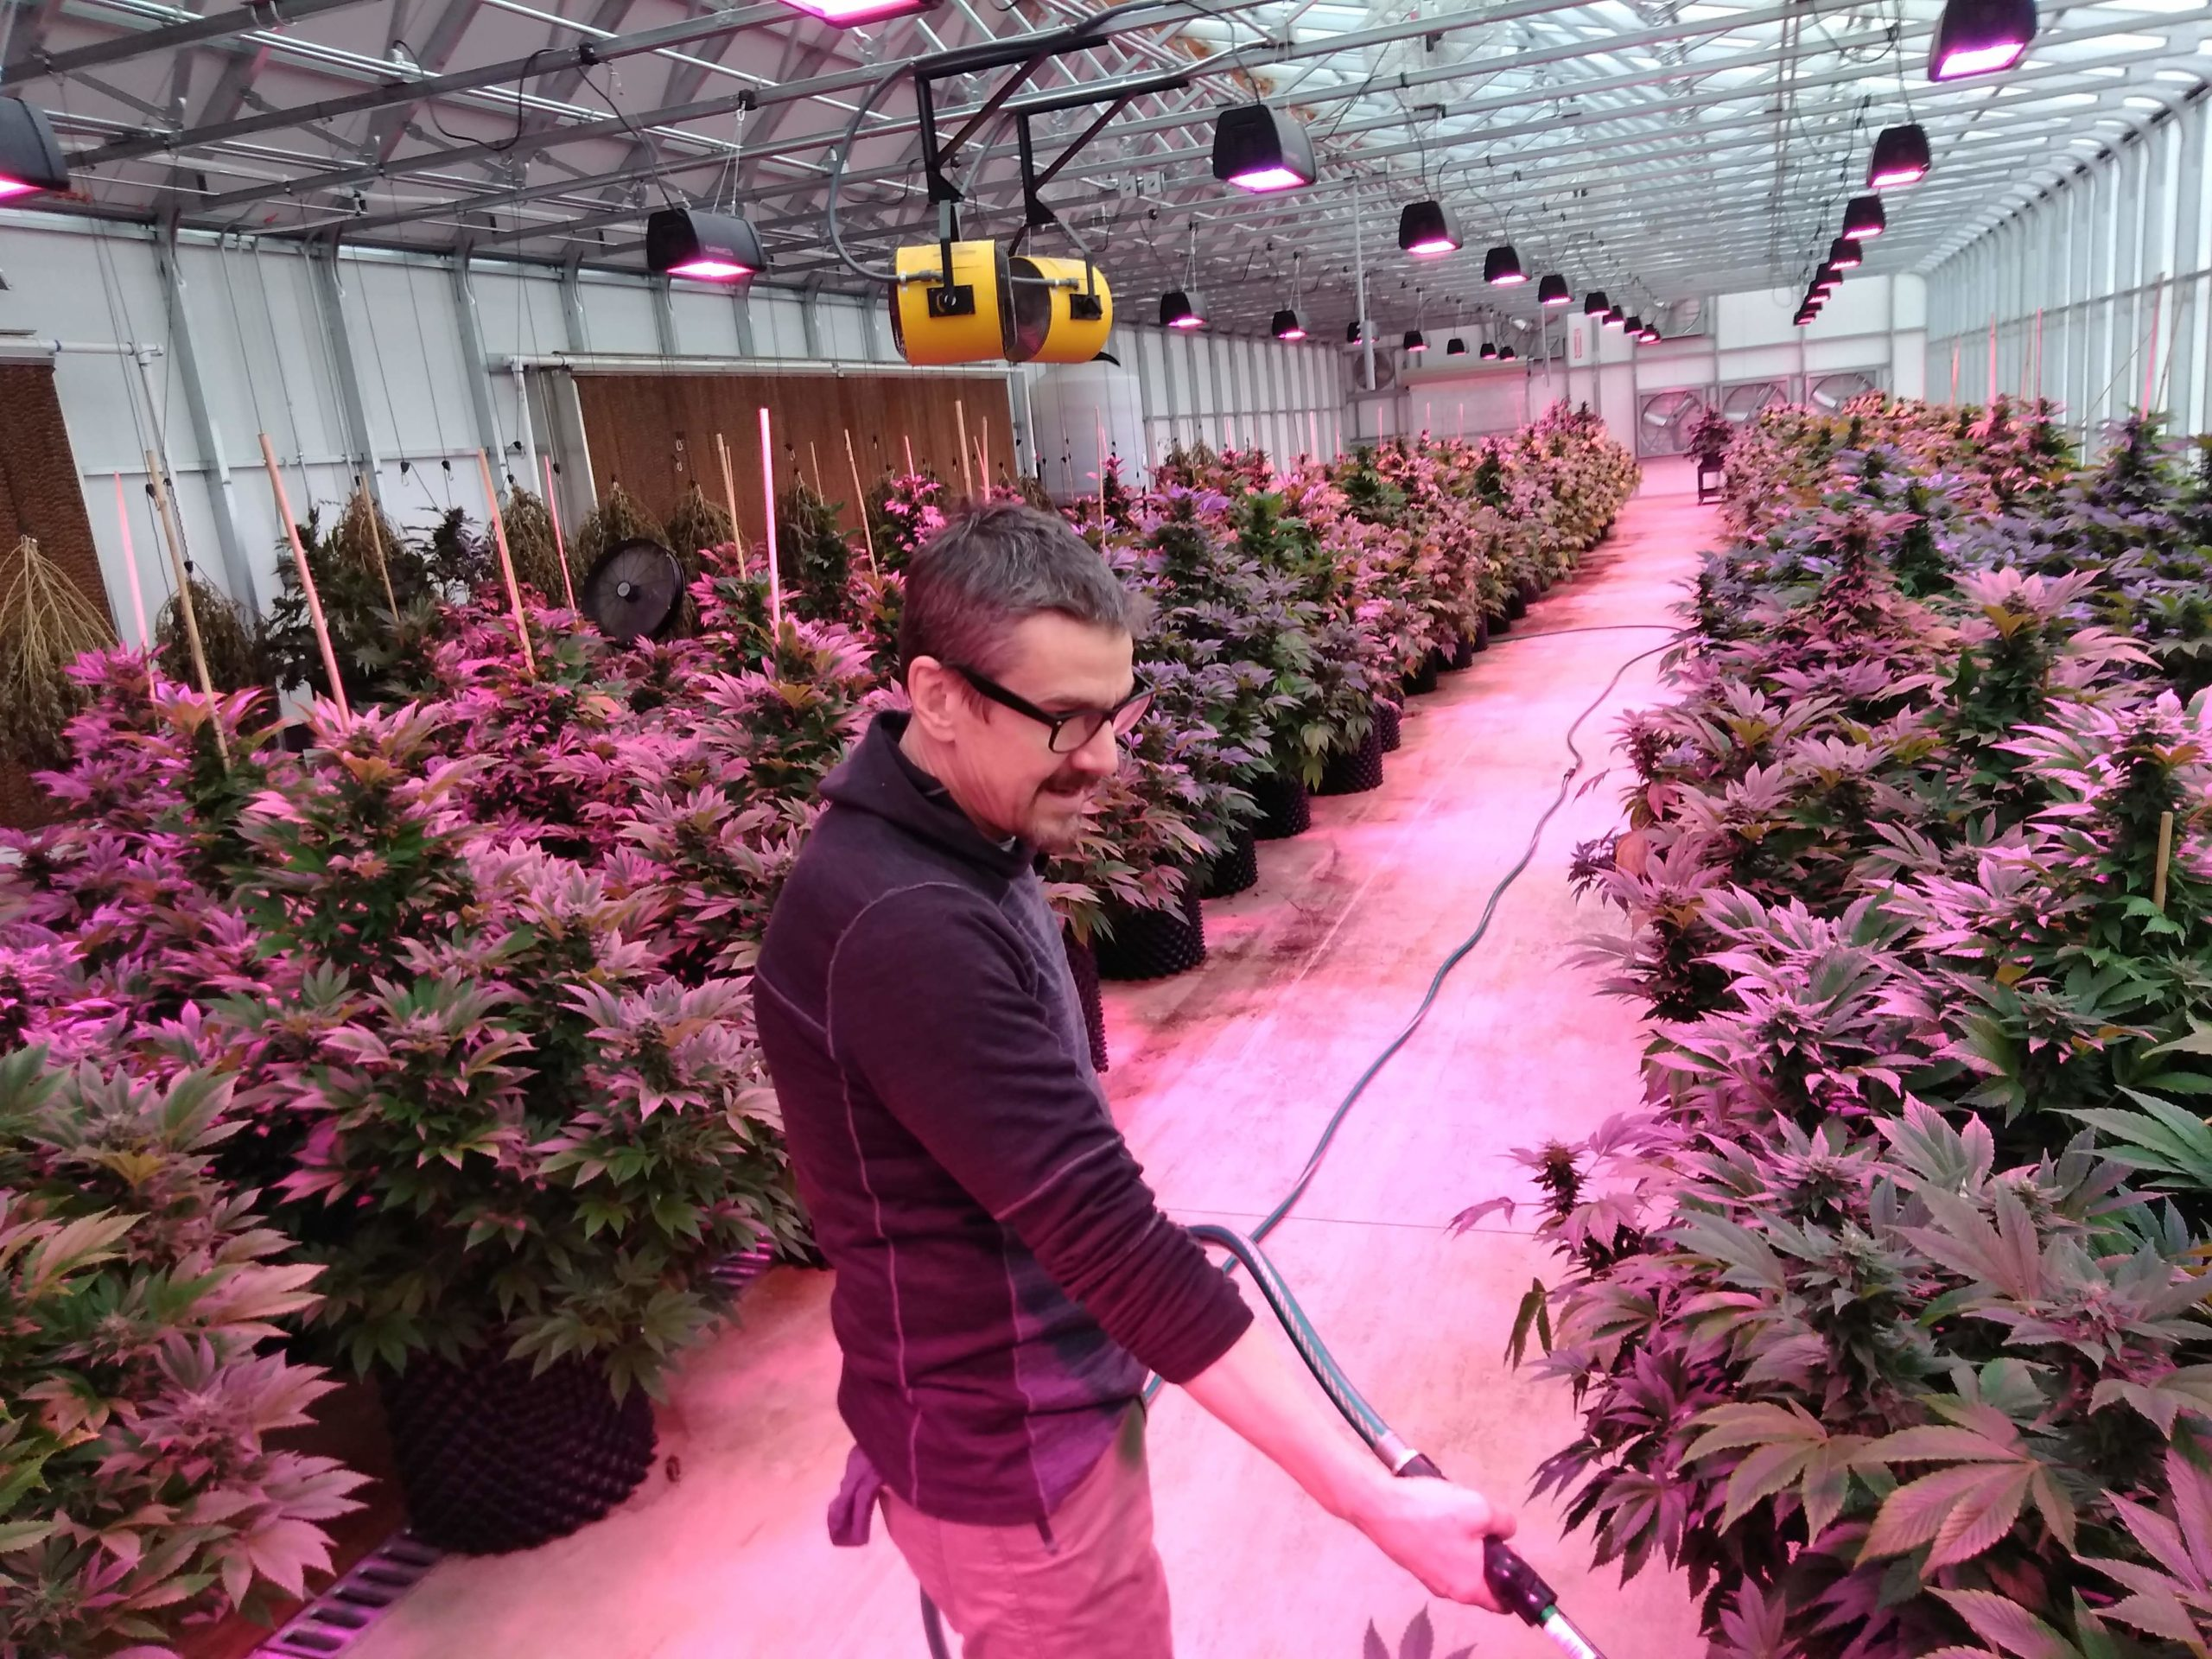 Hemp farmers in Montezuma County face glut, low prices - The Journal